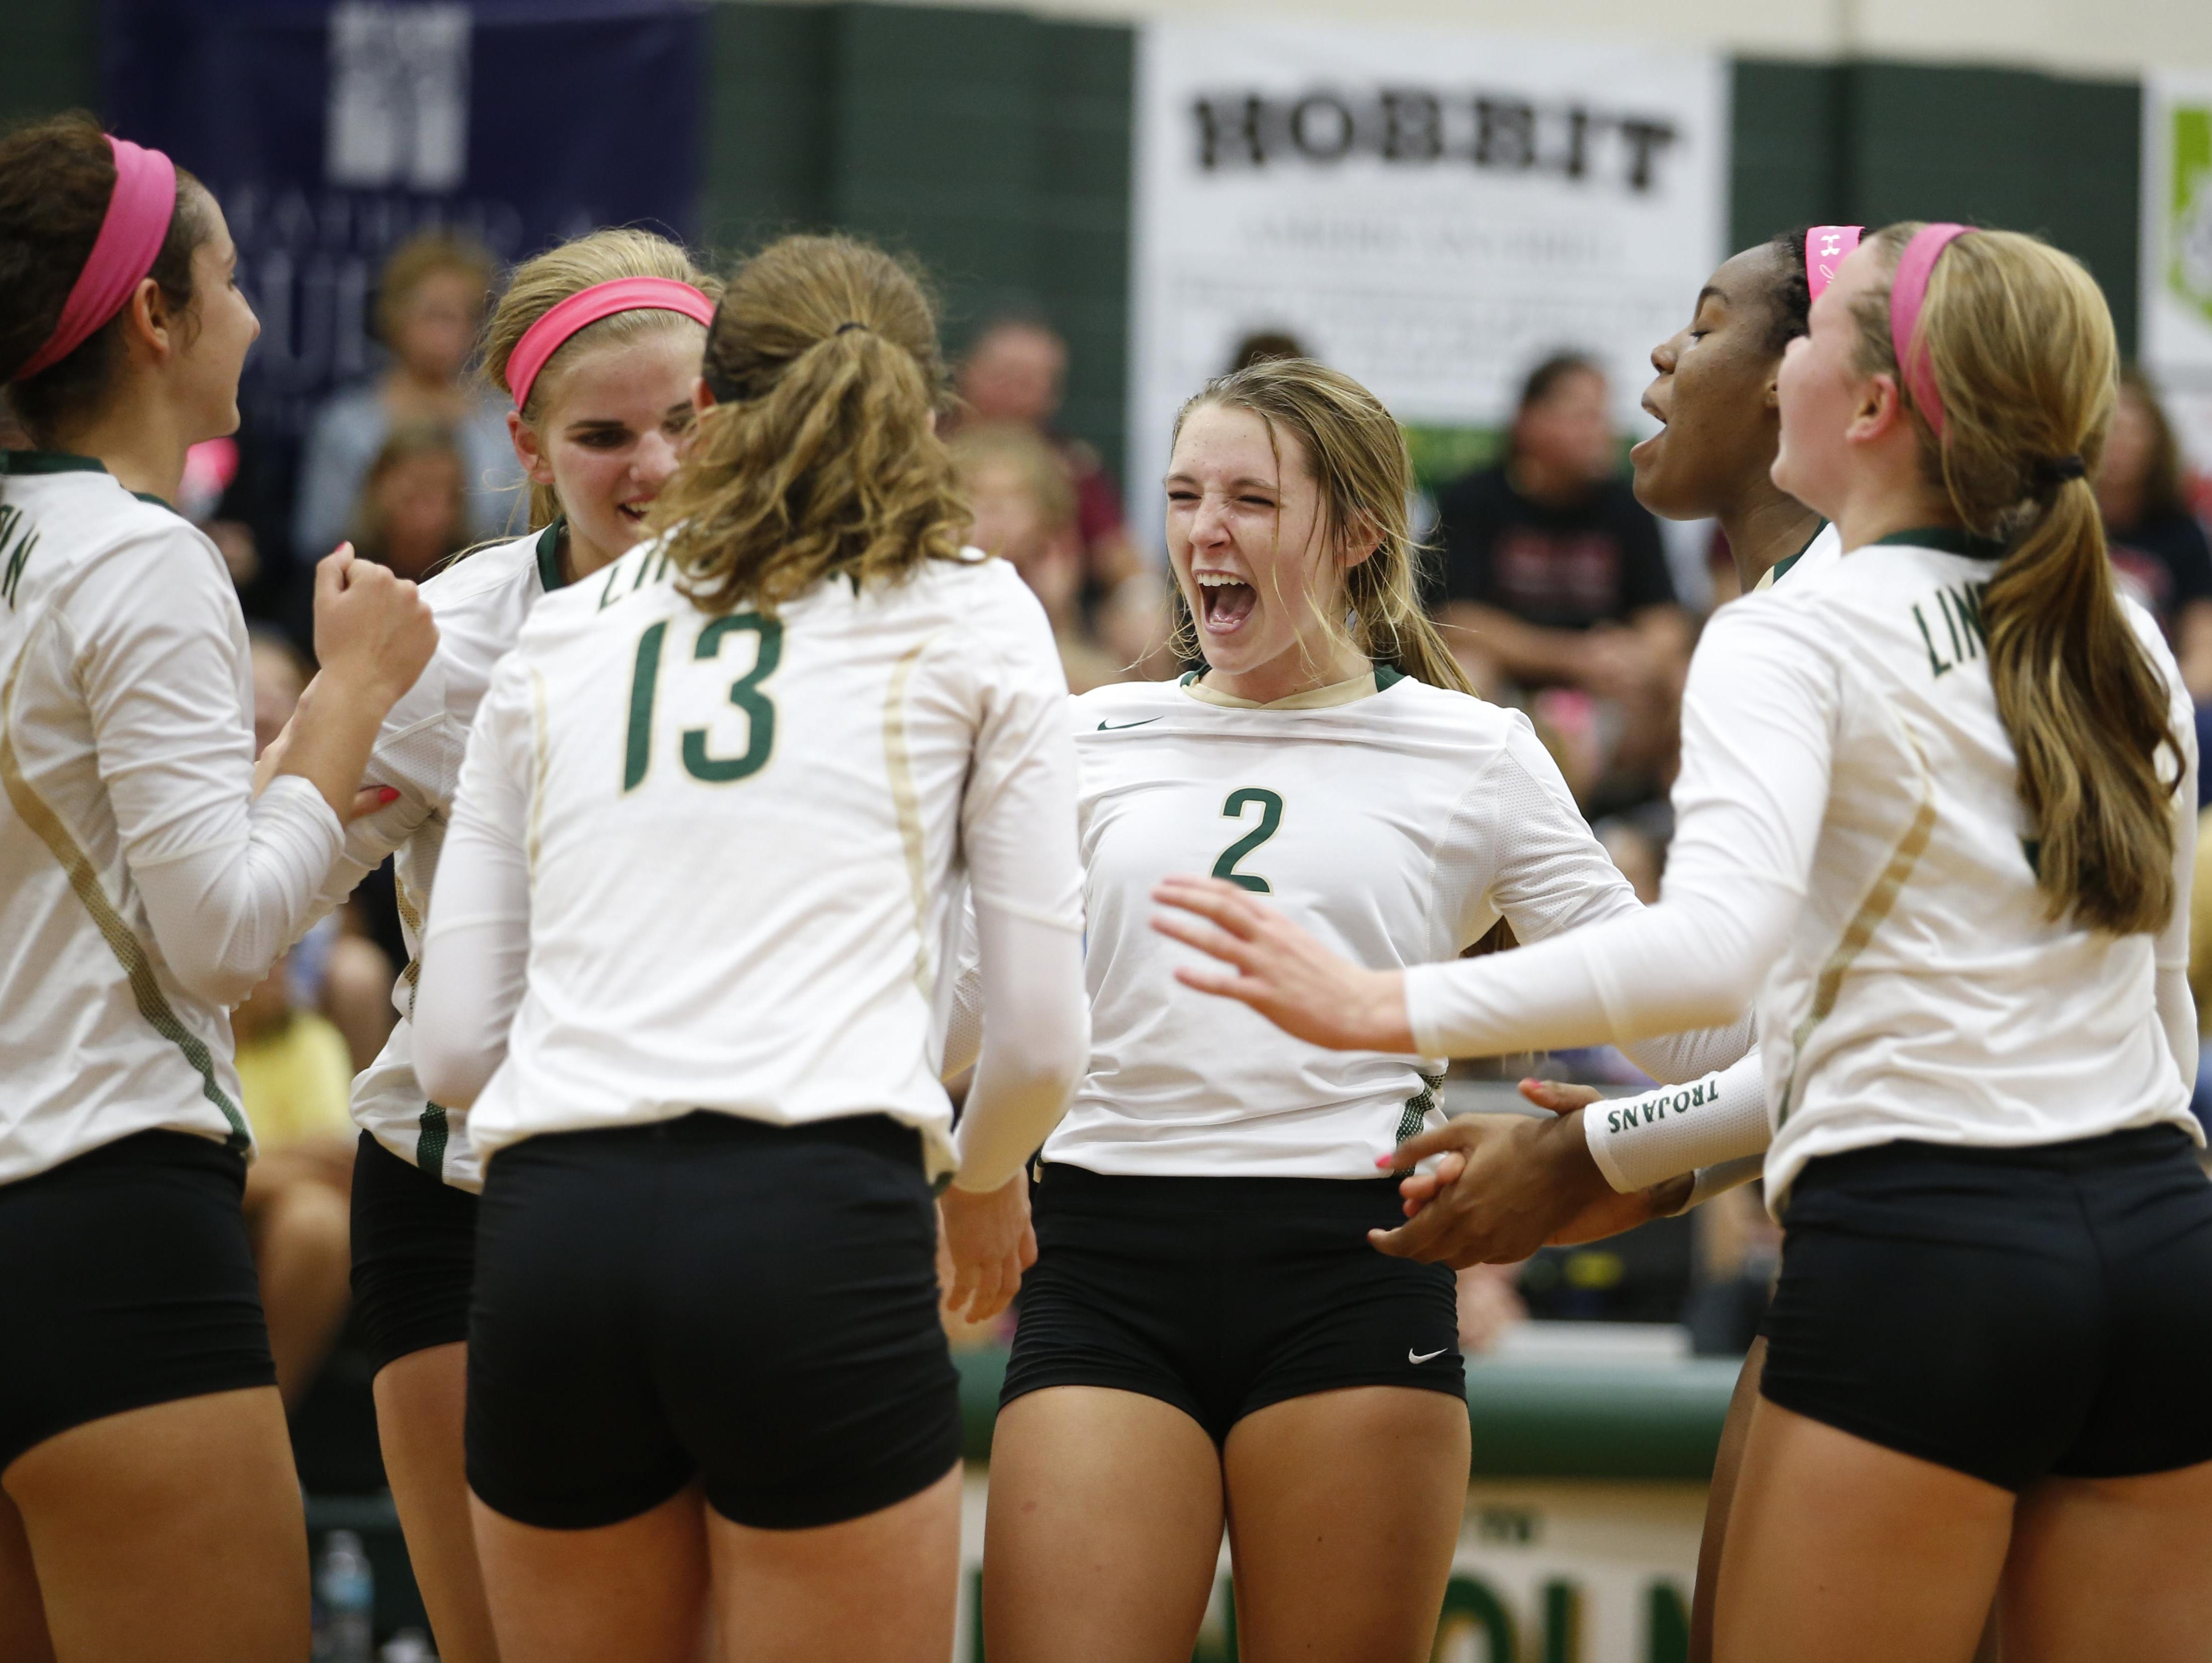 Lincoln's Callie Workman celebrates with teammates after scoring a point against Chiles during their match at Lincoln on Tuesday. The Trojans won 3-2 in an important district game.